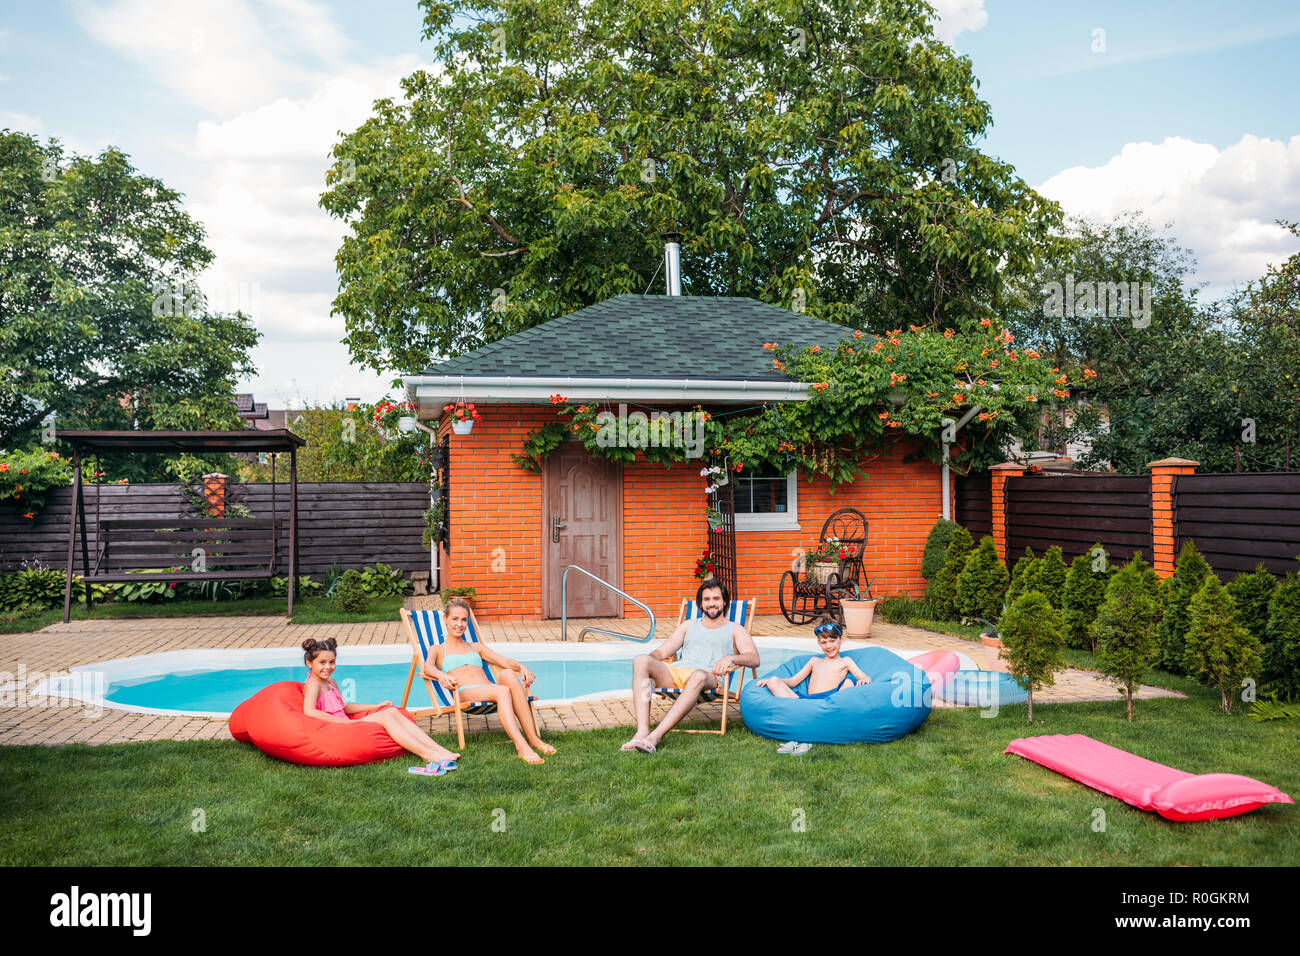 family resting on beach chairs and bean chairs near swimming pool at countryside backyard on summer day - Stock Image